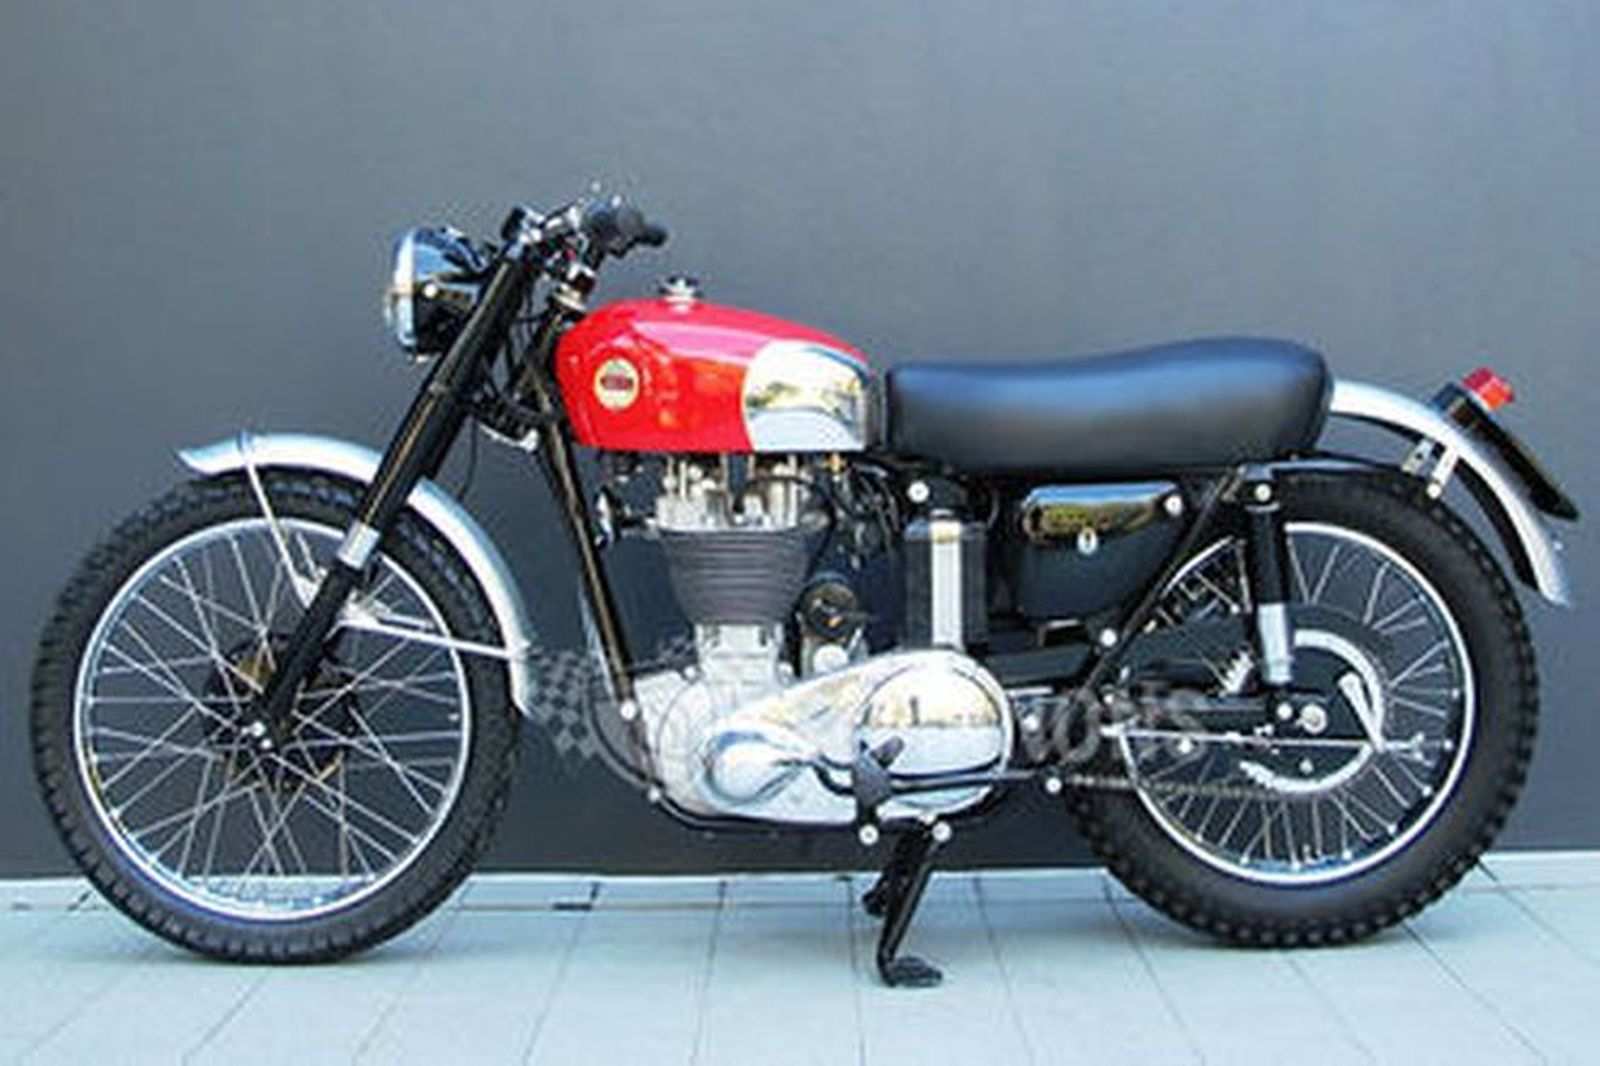 Sold: Ariel HS 500cc Motorcycle Auctions - Lot AF - Shannons